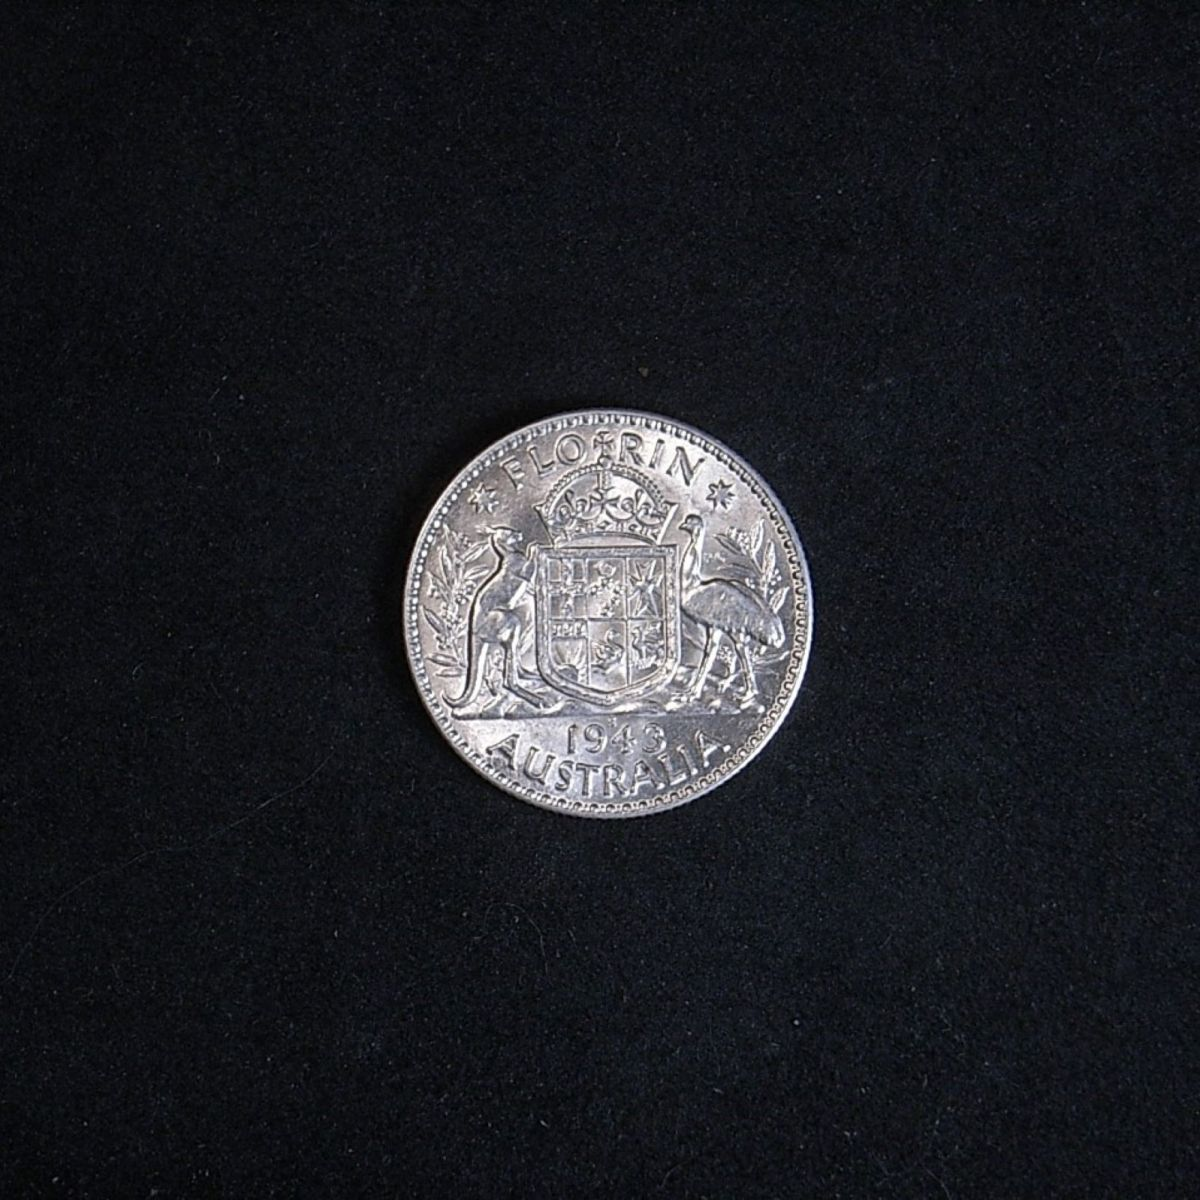 Aussie 1943s florin reverse highlighting lustre of the coin